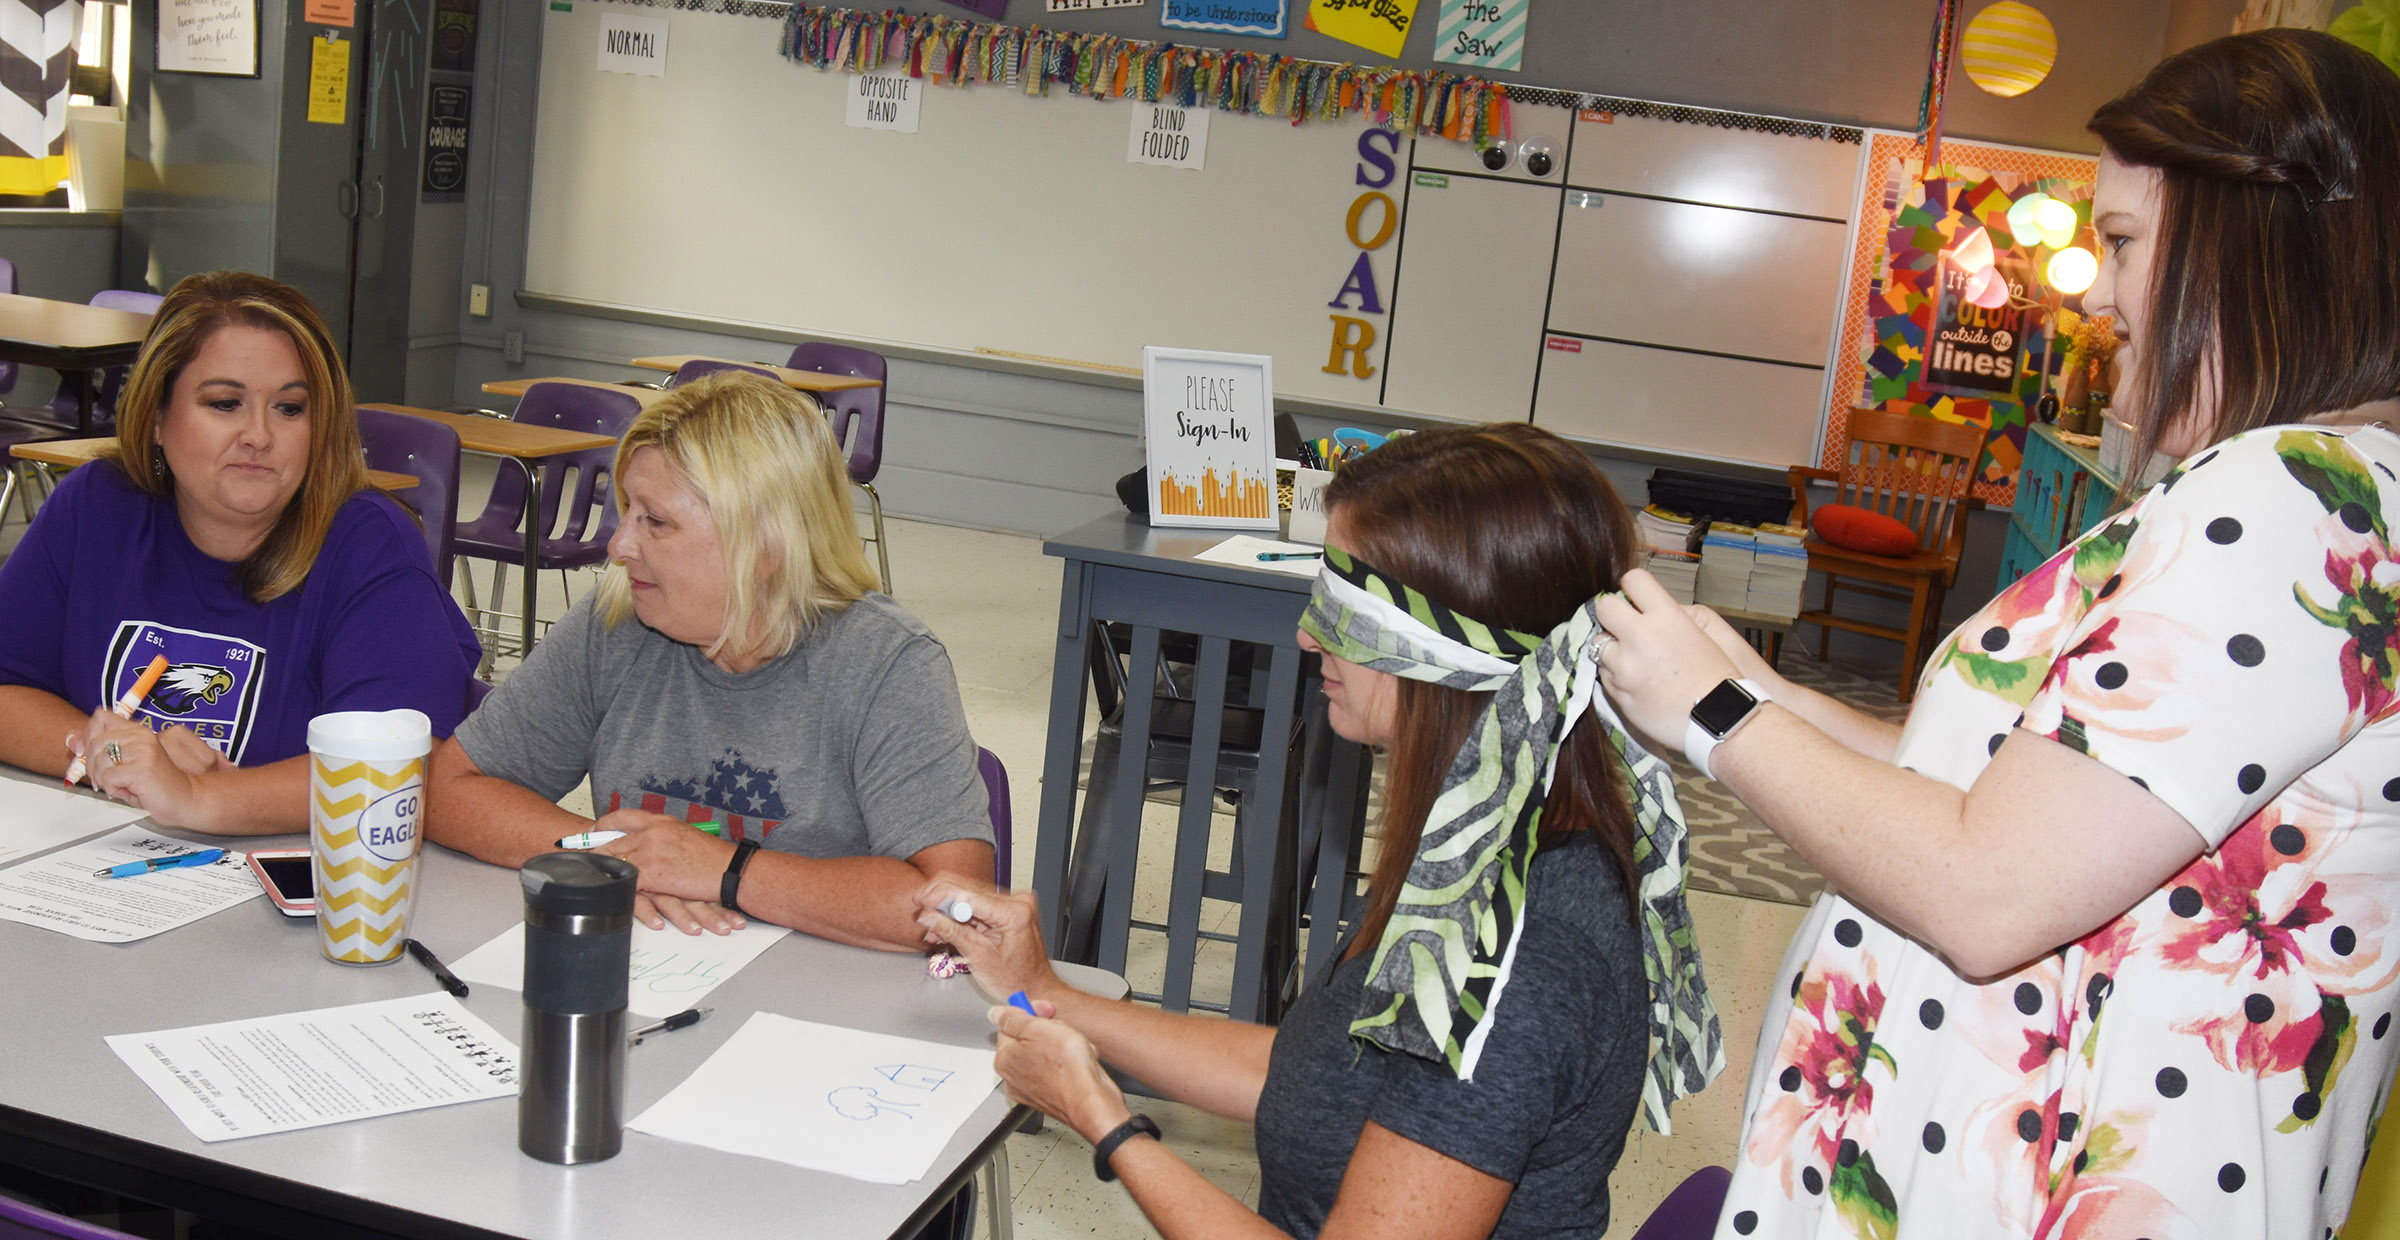 CMS teacher Paige Cook blindfolds speech pathologist Christi Kidwell in an activity during a session on building relationships with students. In the activity, teachers were asked to perform writing tasks while being blindfolded and with their non-dominant hand.